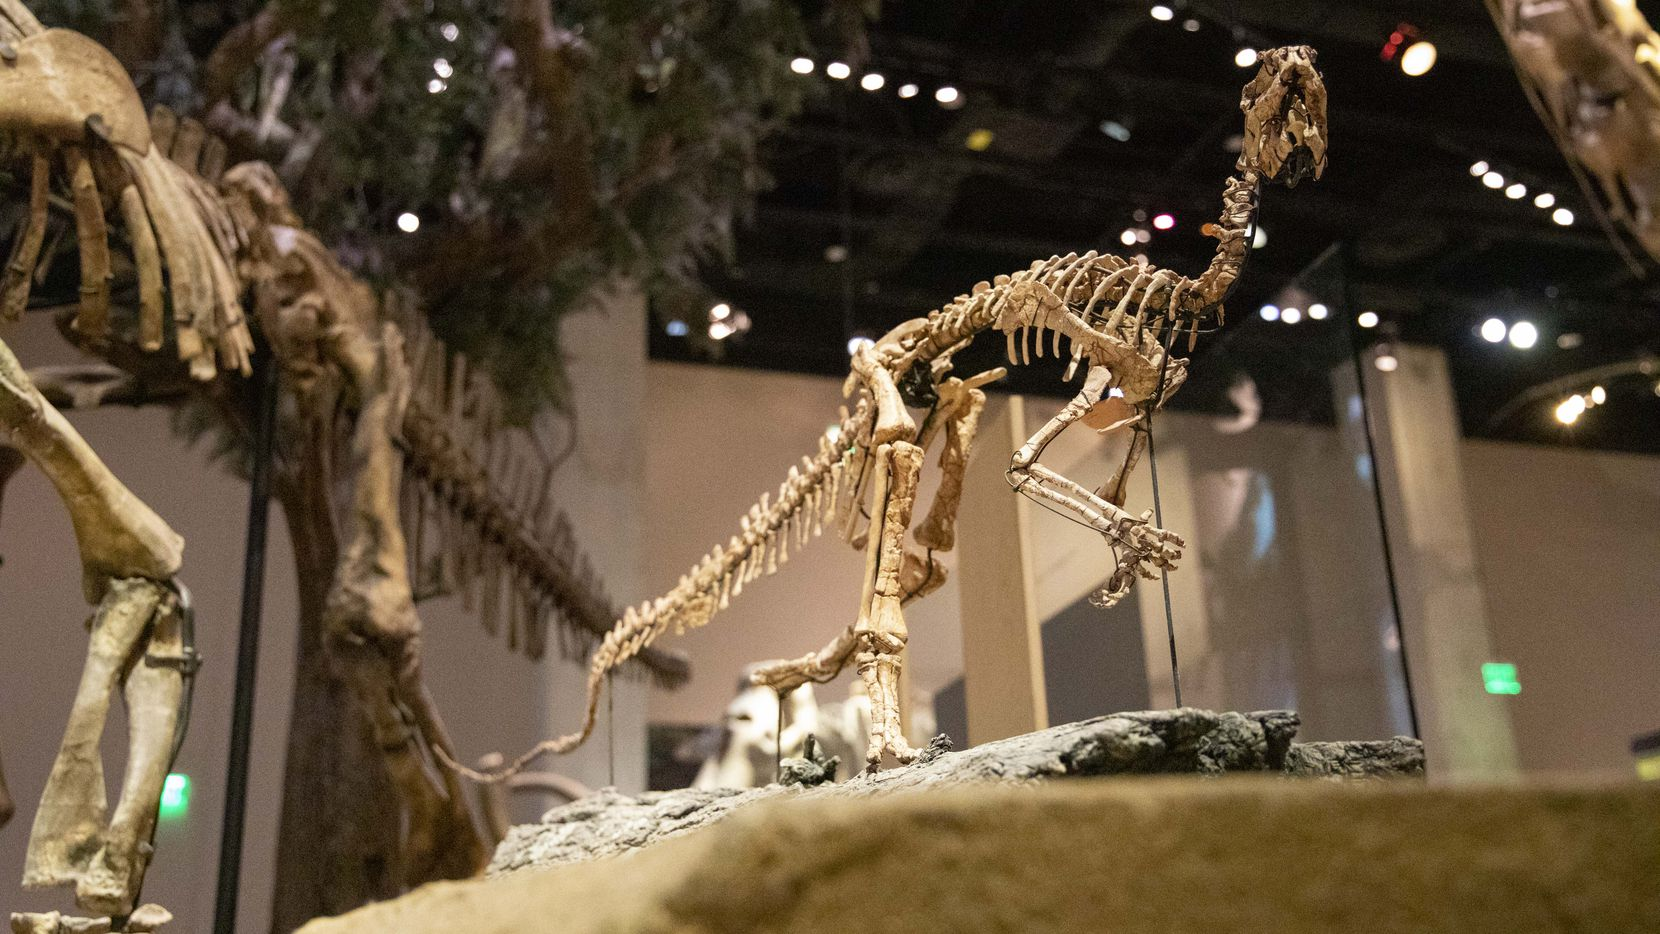 A livestream of entertaining education on dinosaurs will be featured at the April 24 virtual event.